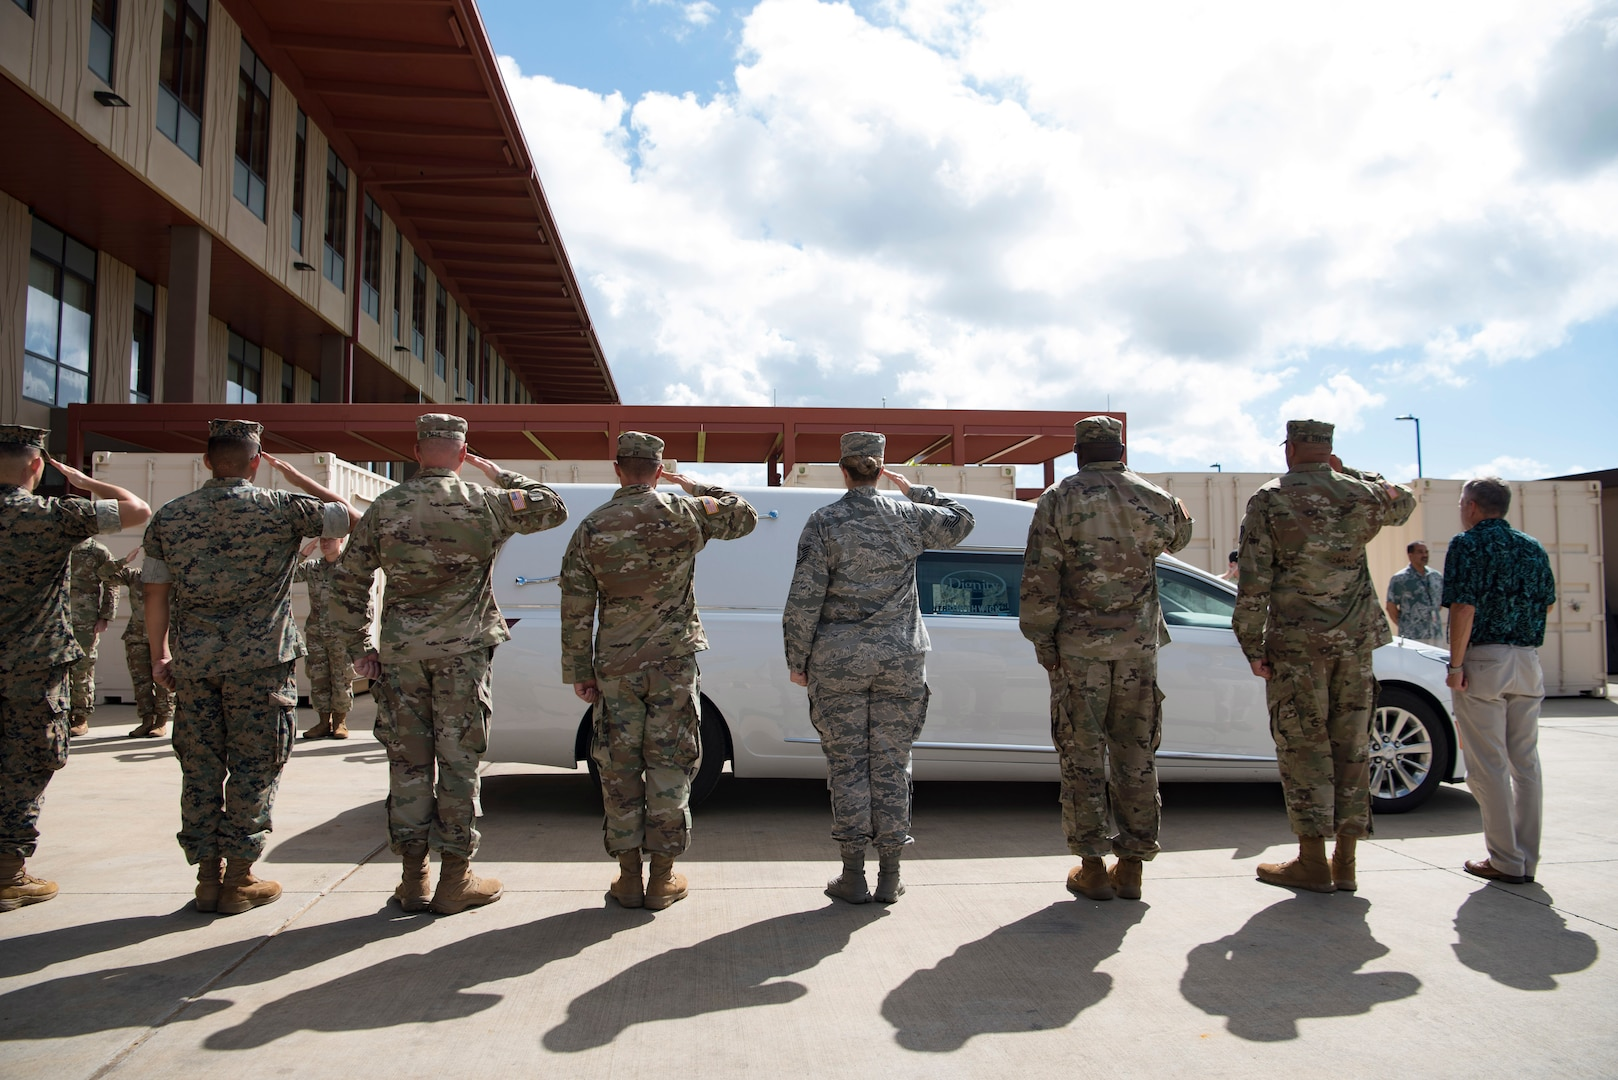 Members of the Defense POW/MIA Accounting Agency (DPAA) render honors during a chain of custody event for the recently identified remains of U.S. Army Cpl. Albert Mills at Joint Base Pearl Harbor-Hickam, Hawaii, Nov. 9, 2018. Mills, a member of Company F, 2nd Battalion, 5th Cavalry Regiment, 1st Cavalry Division during the Korean War, was transferred and buried in his hometown of Dallas. DPAA conducts global search, recovery and laboratory operations to provide the fullest possible accounting for our missing personnel to their families and the nation.